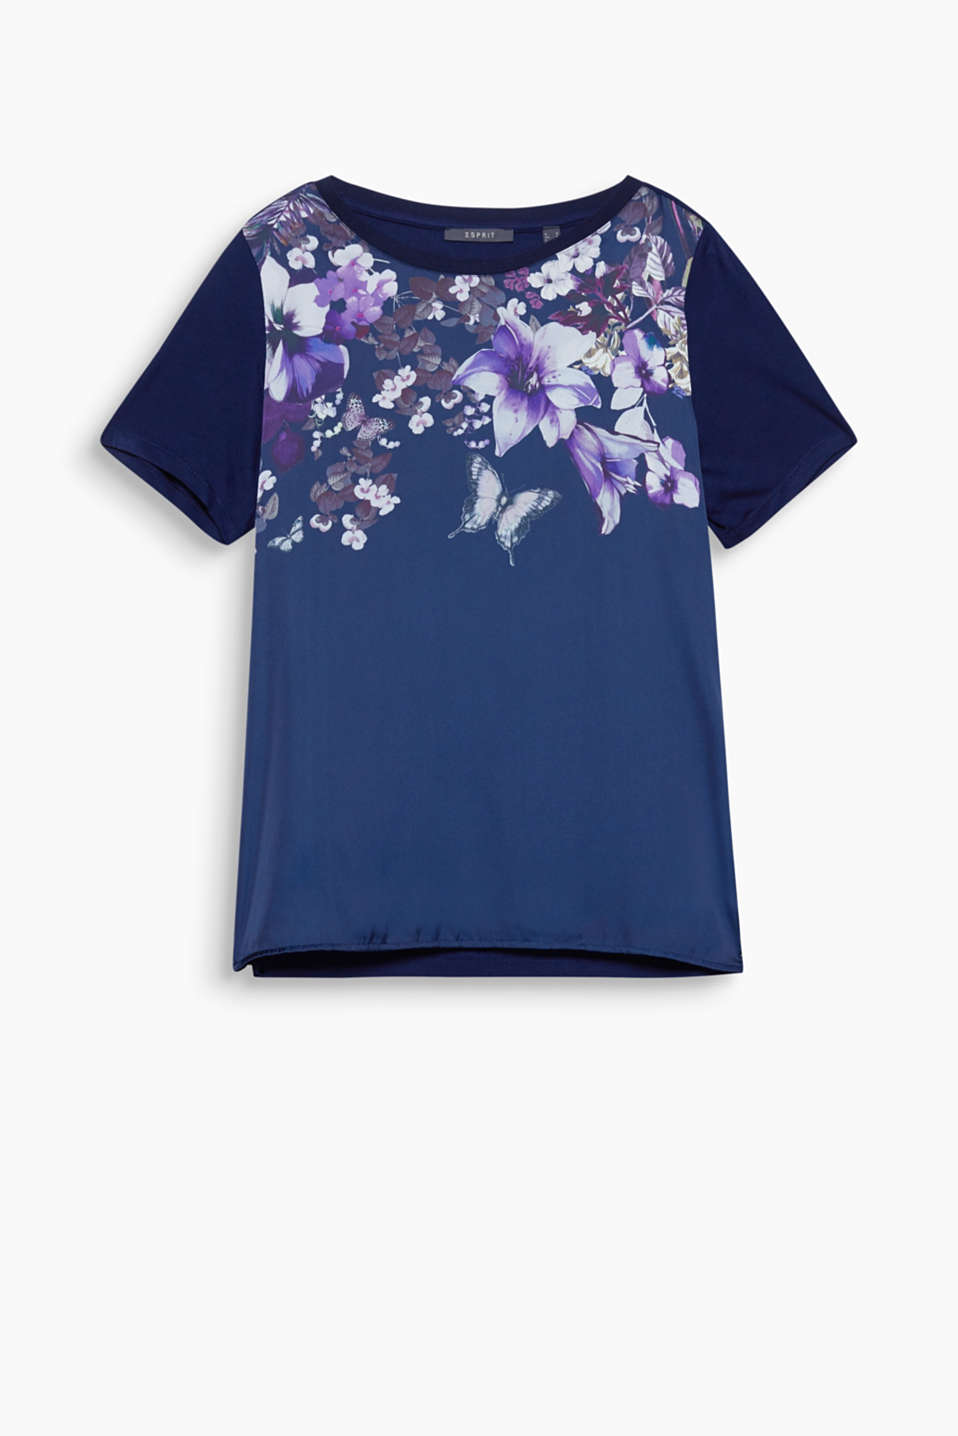 The floral print and flowing material mix give this T-shirt its elegant look.